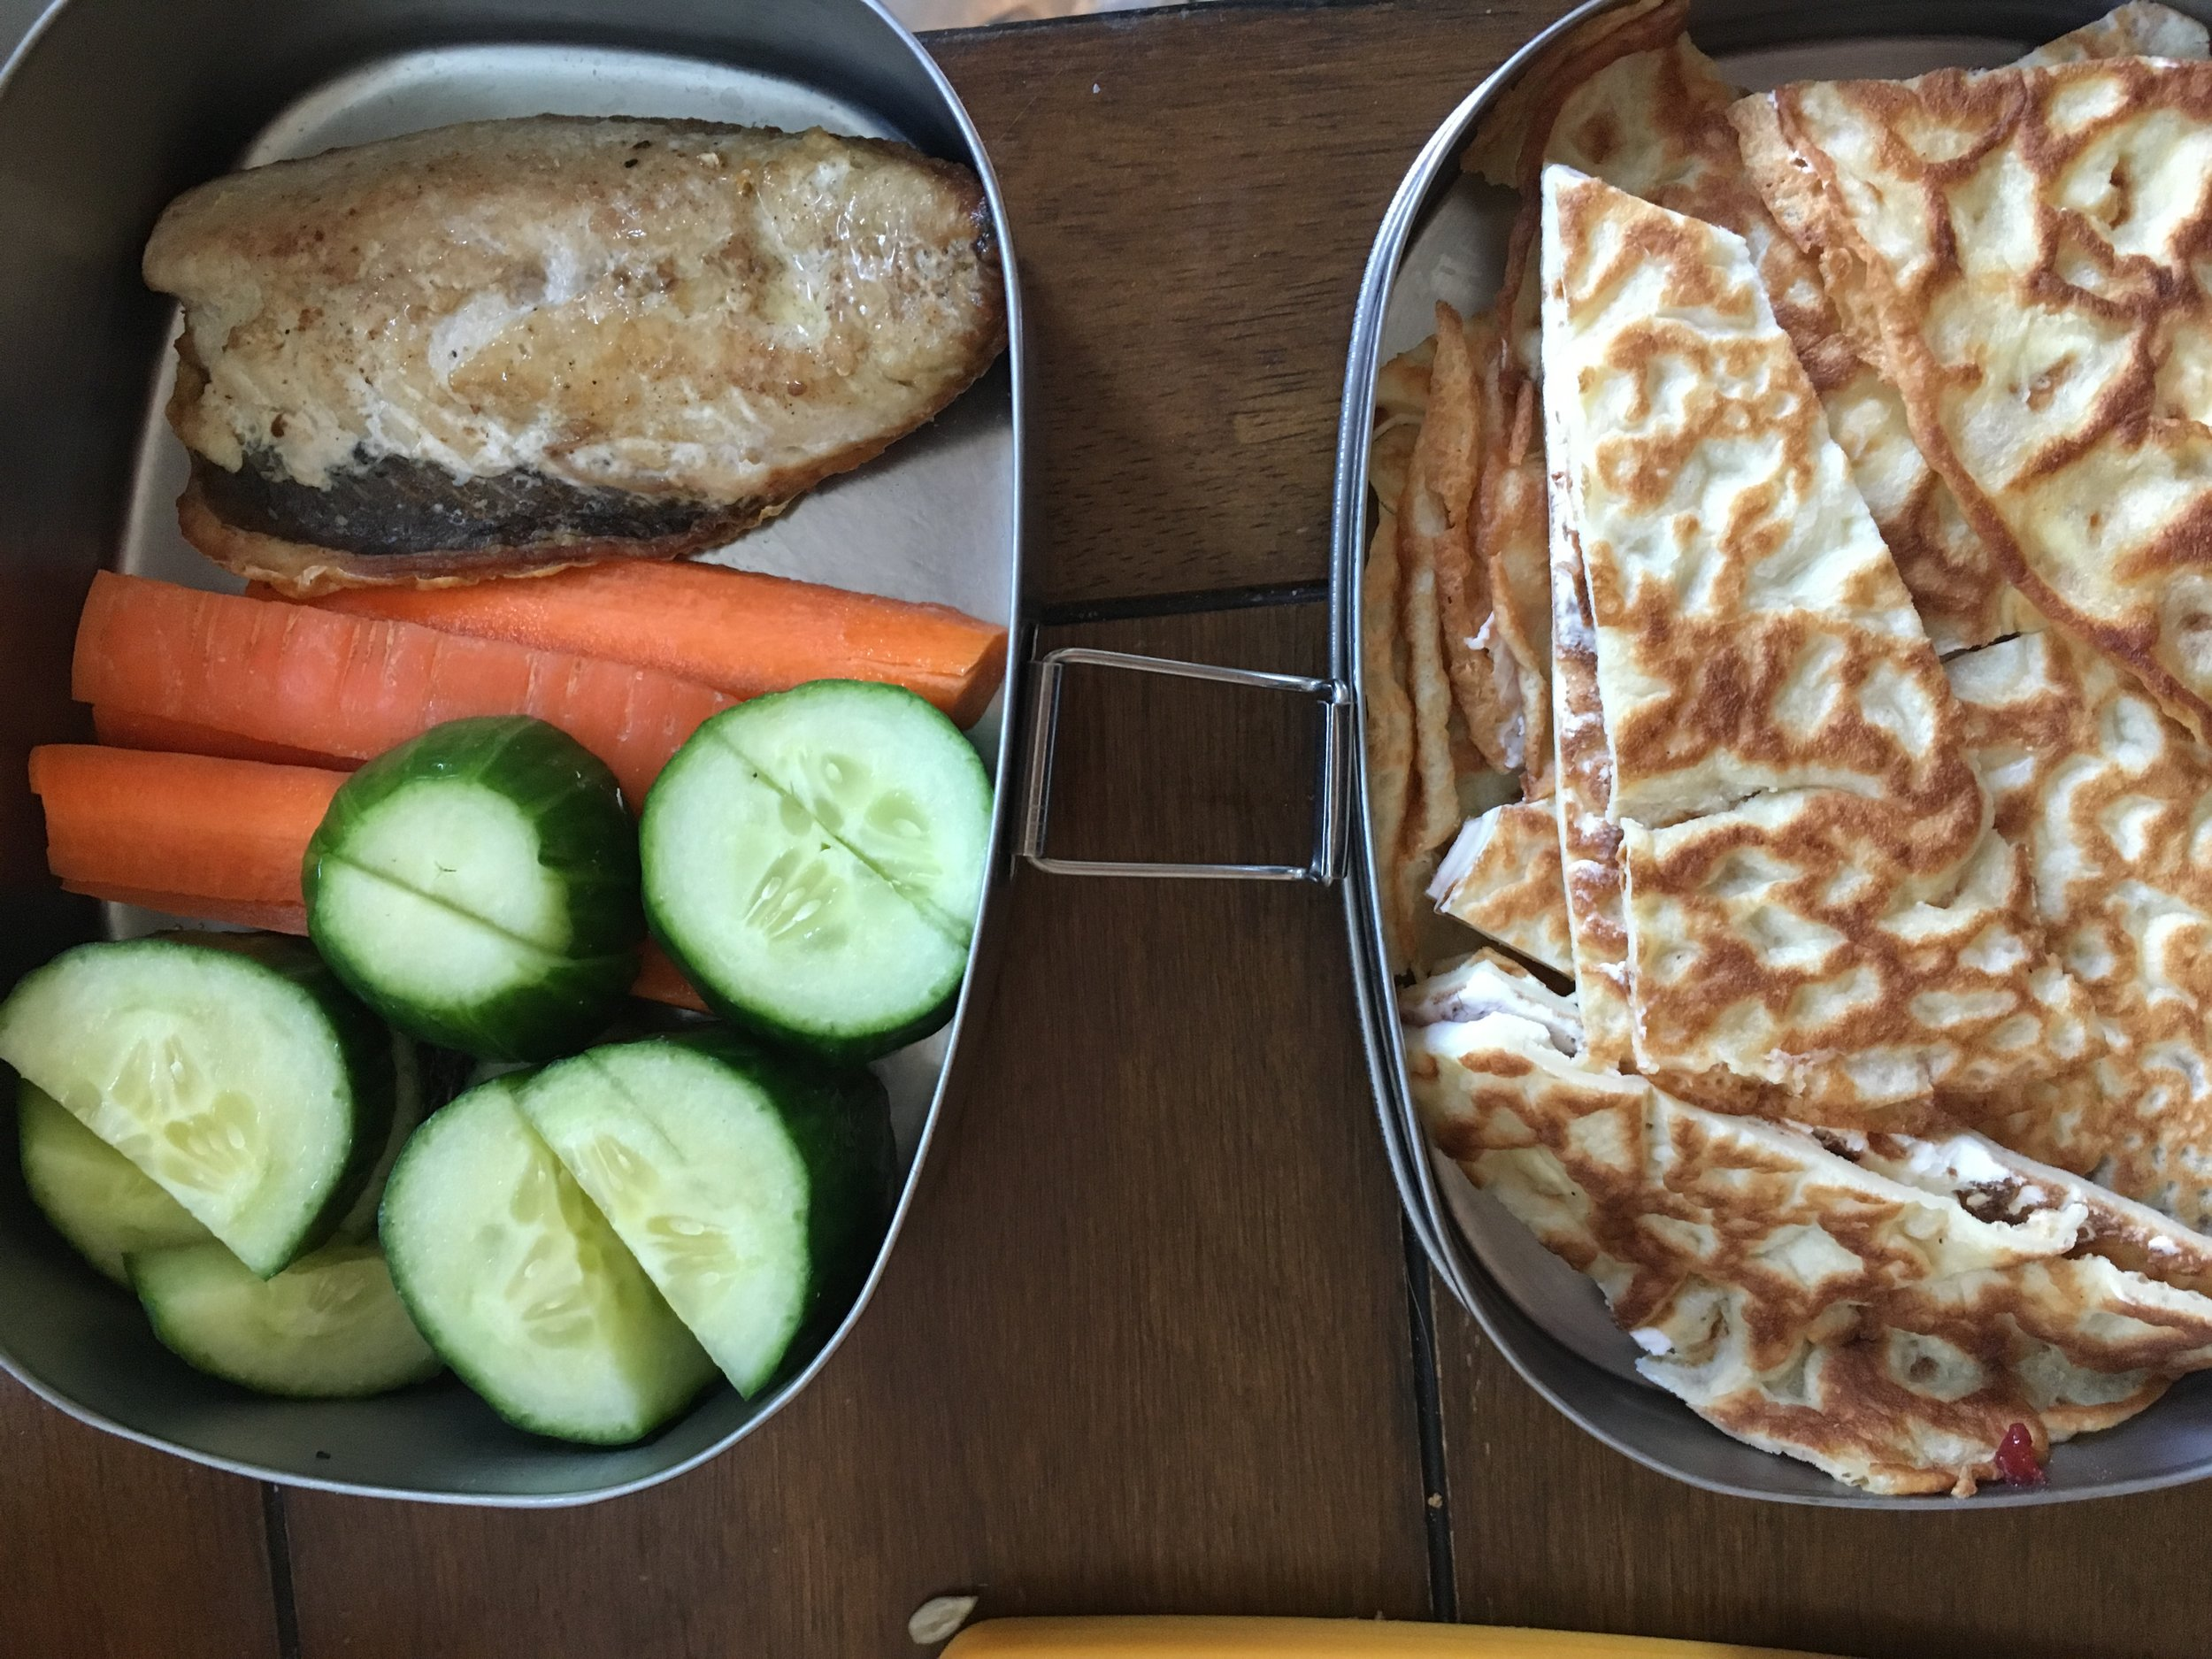 Forest School Lunch Day 2 (I forgot to photograph Day 1)! Fried mackerel, raw carrots and cucumbers (L); leftover crepe with cream cheese and jam (R).